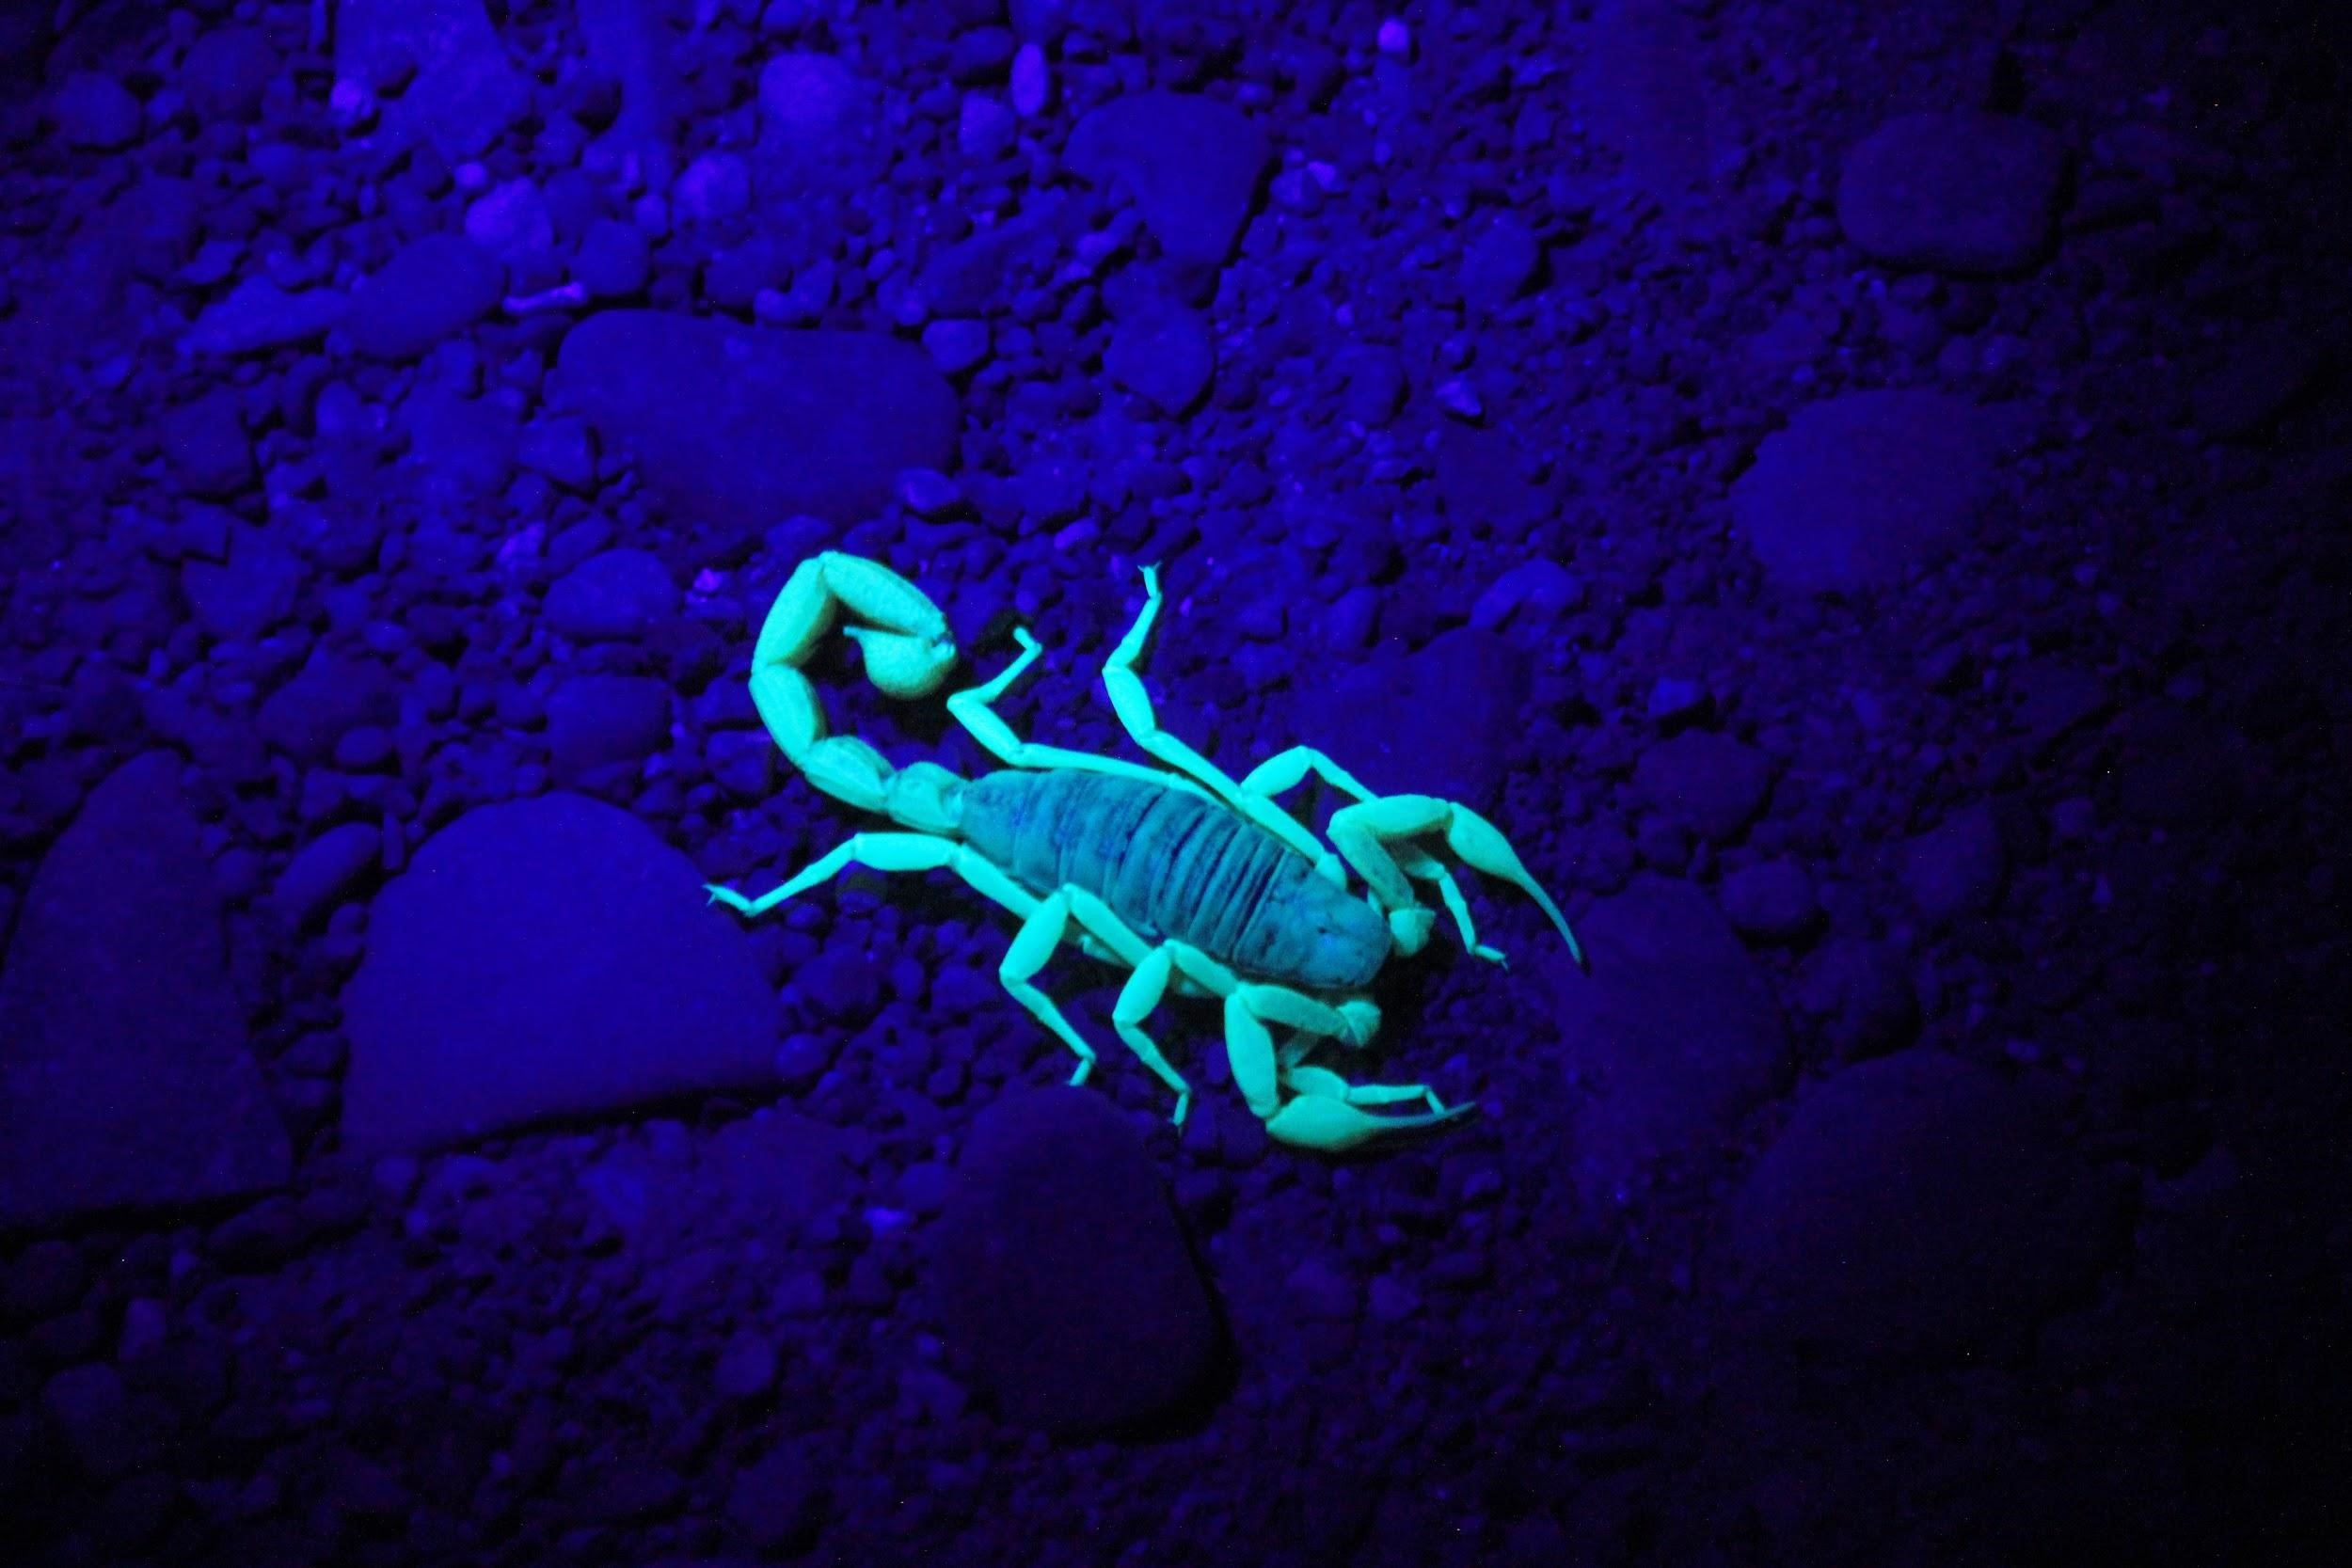 Scorpion Nesting Habits - Avoid Providing Shelters for